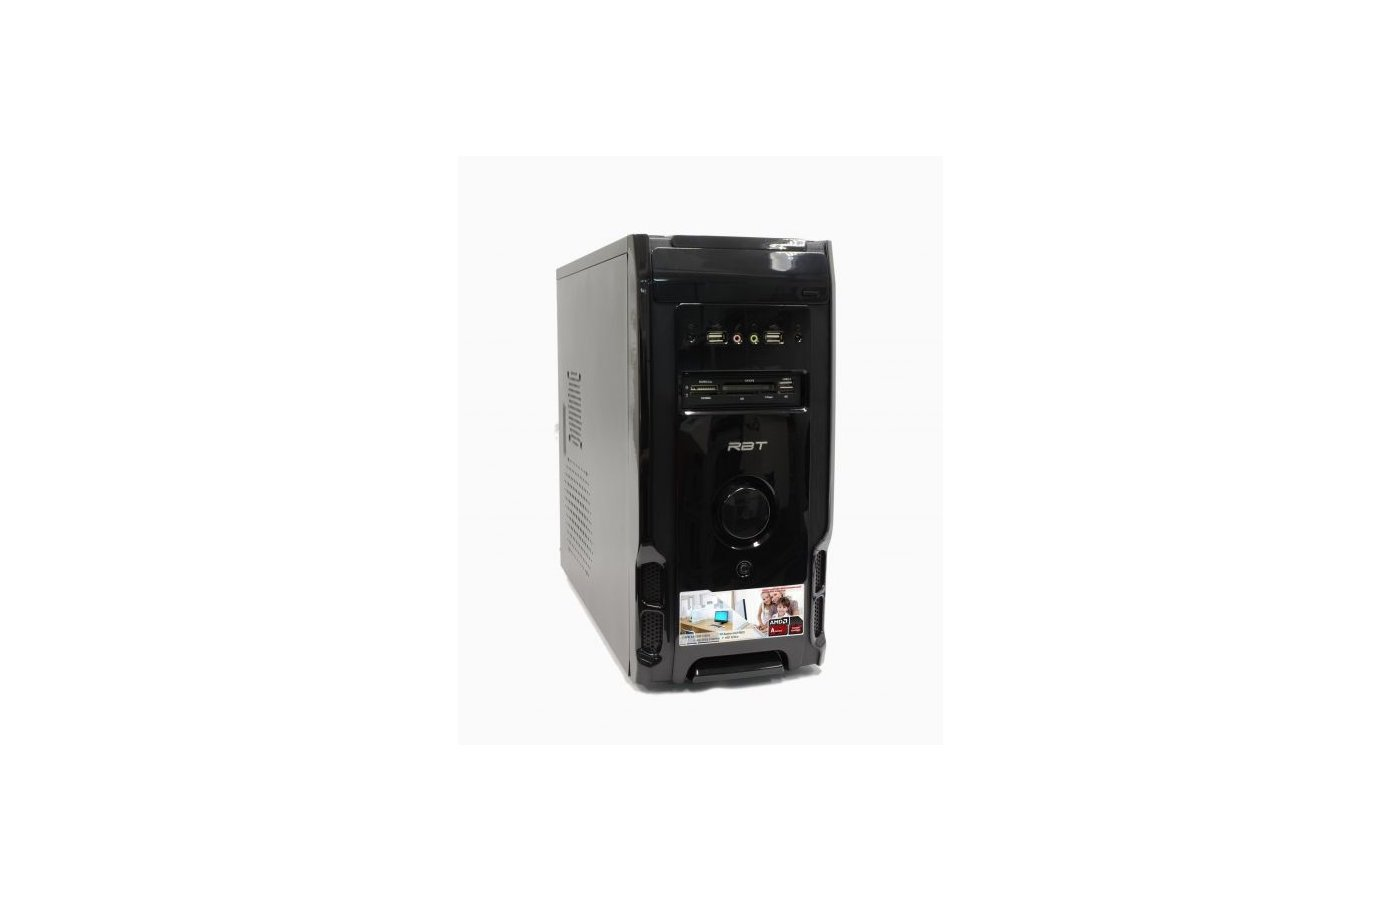 Системный блок РБТ R239 AMD A4 5300 X2 3.4Gh/4Gb/500Gb/HD7480D/DVD-RW/CR/Win7HB